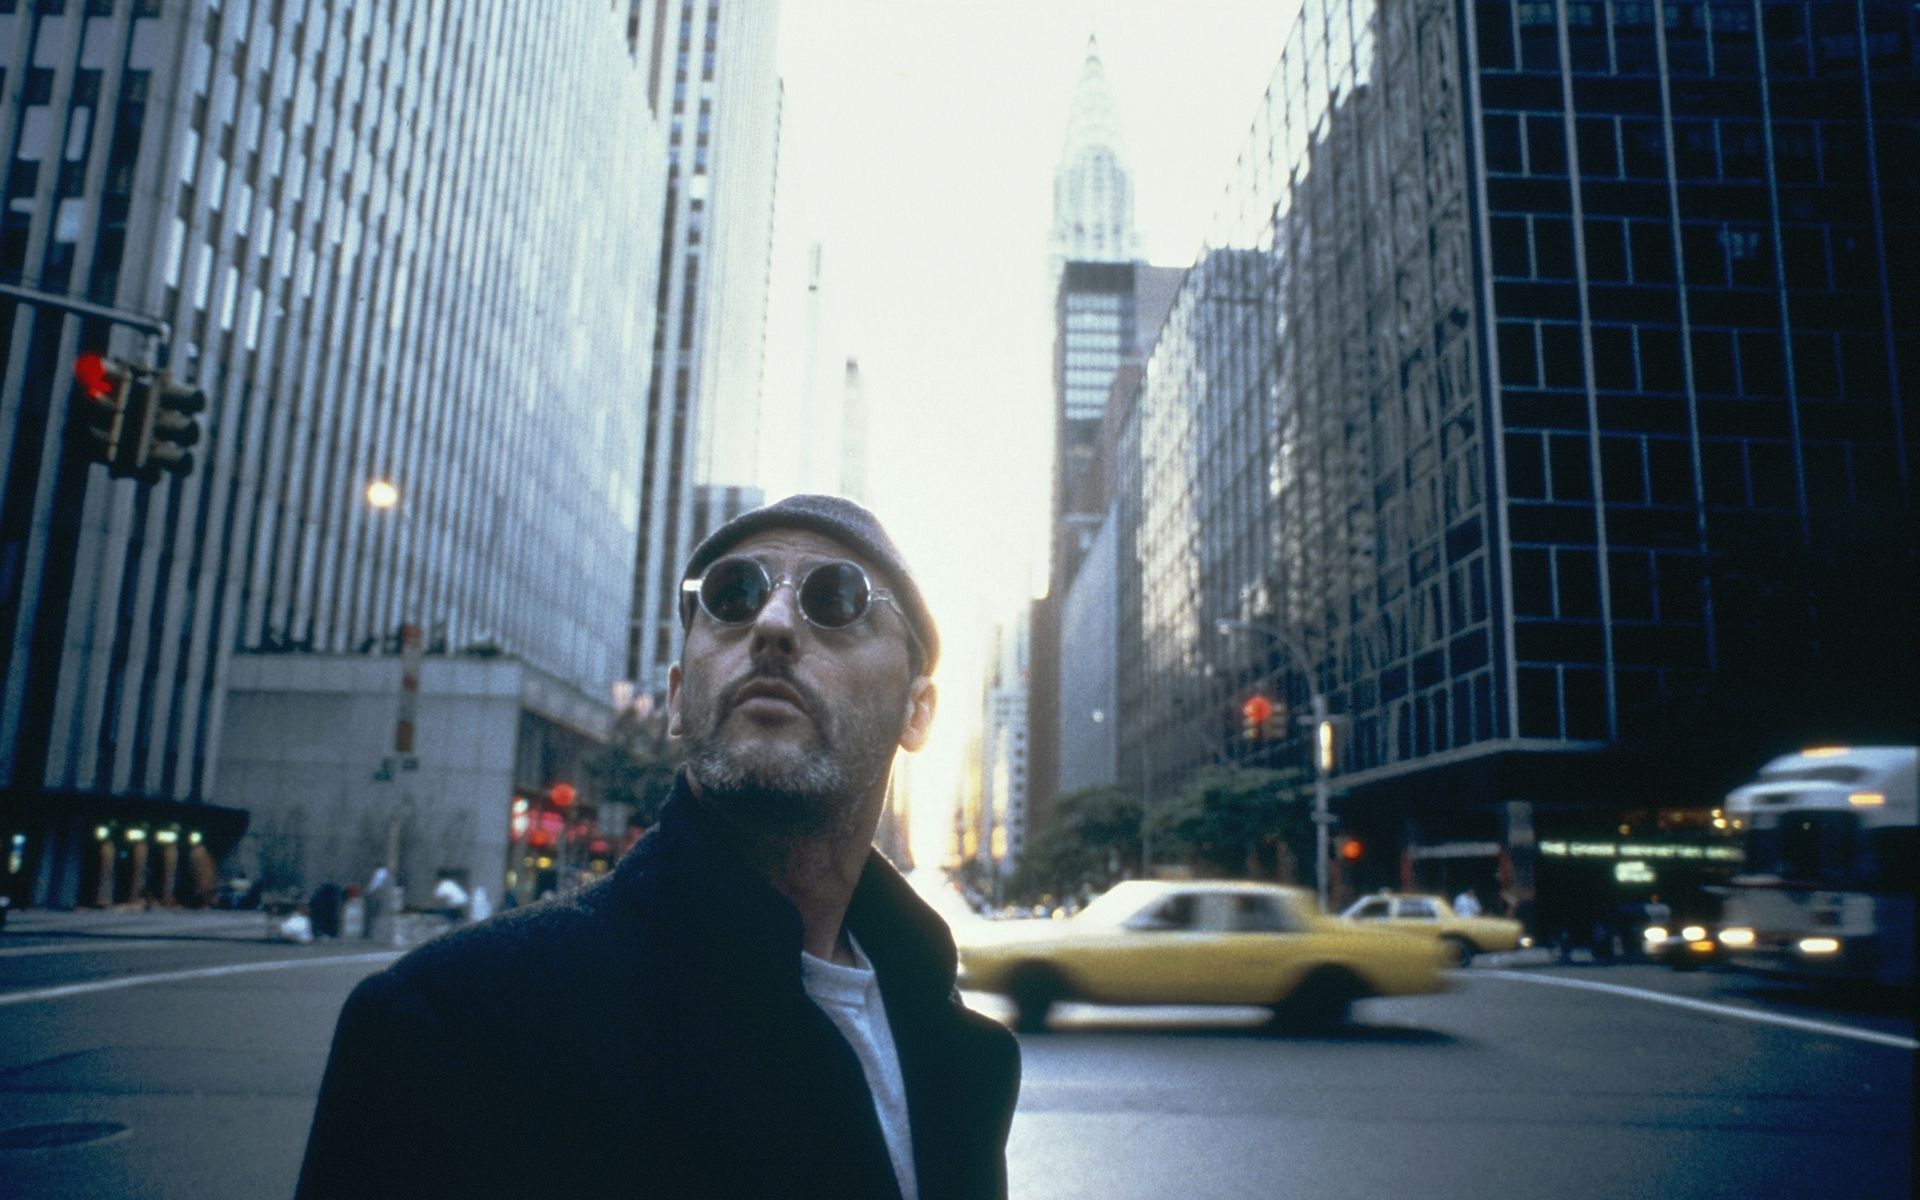 movie leon: the professional wallpapers (desktop, phone, tablet